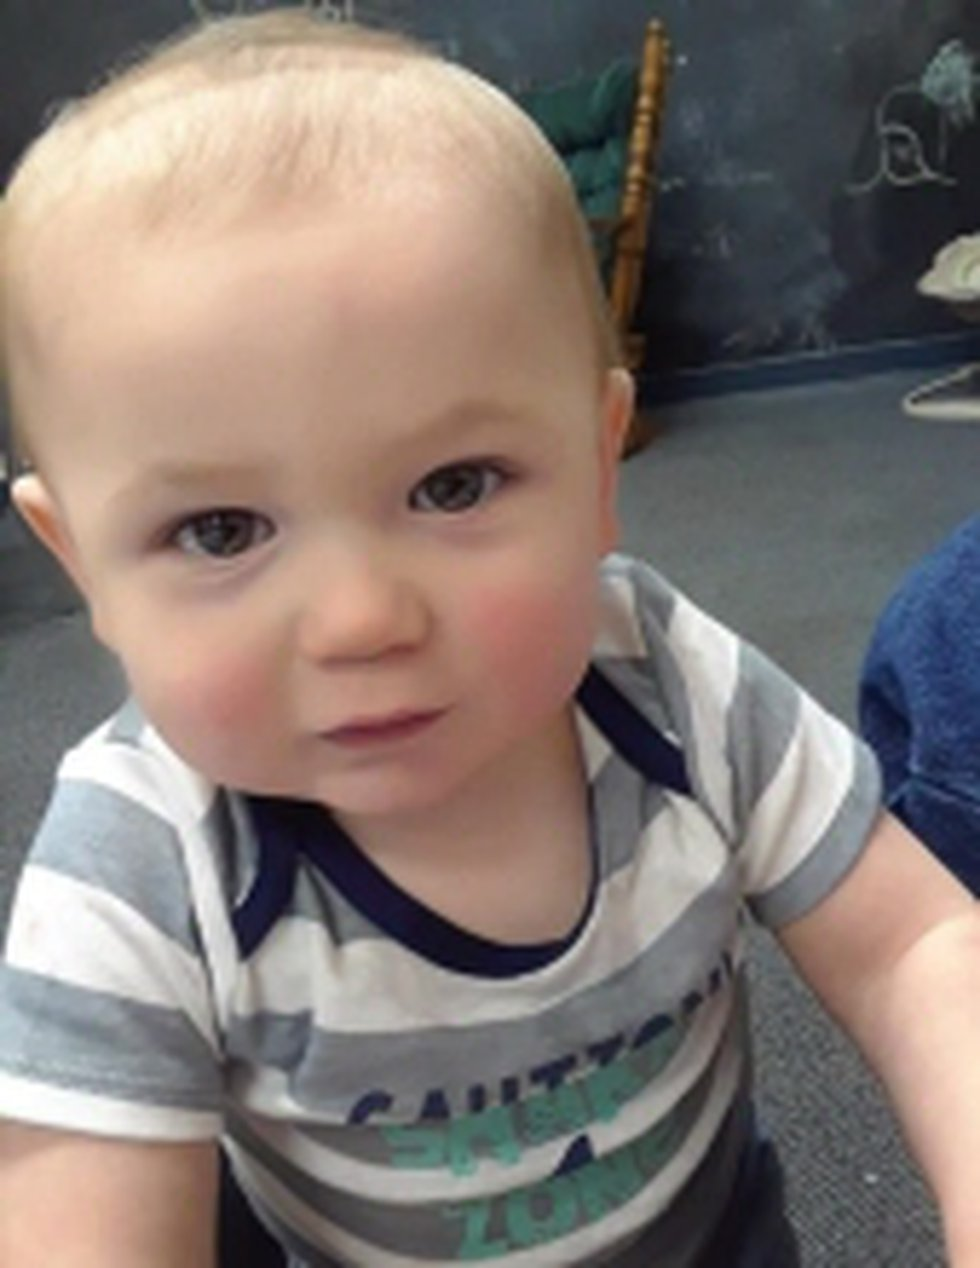 Sean Buttery Jr. was transported to Cincinnati Children's Hospital on Aug. 16 following a...